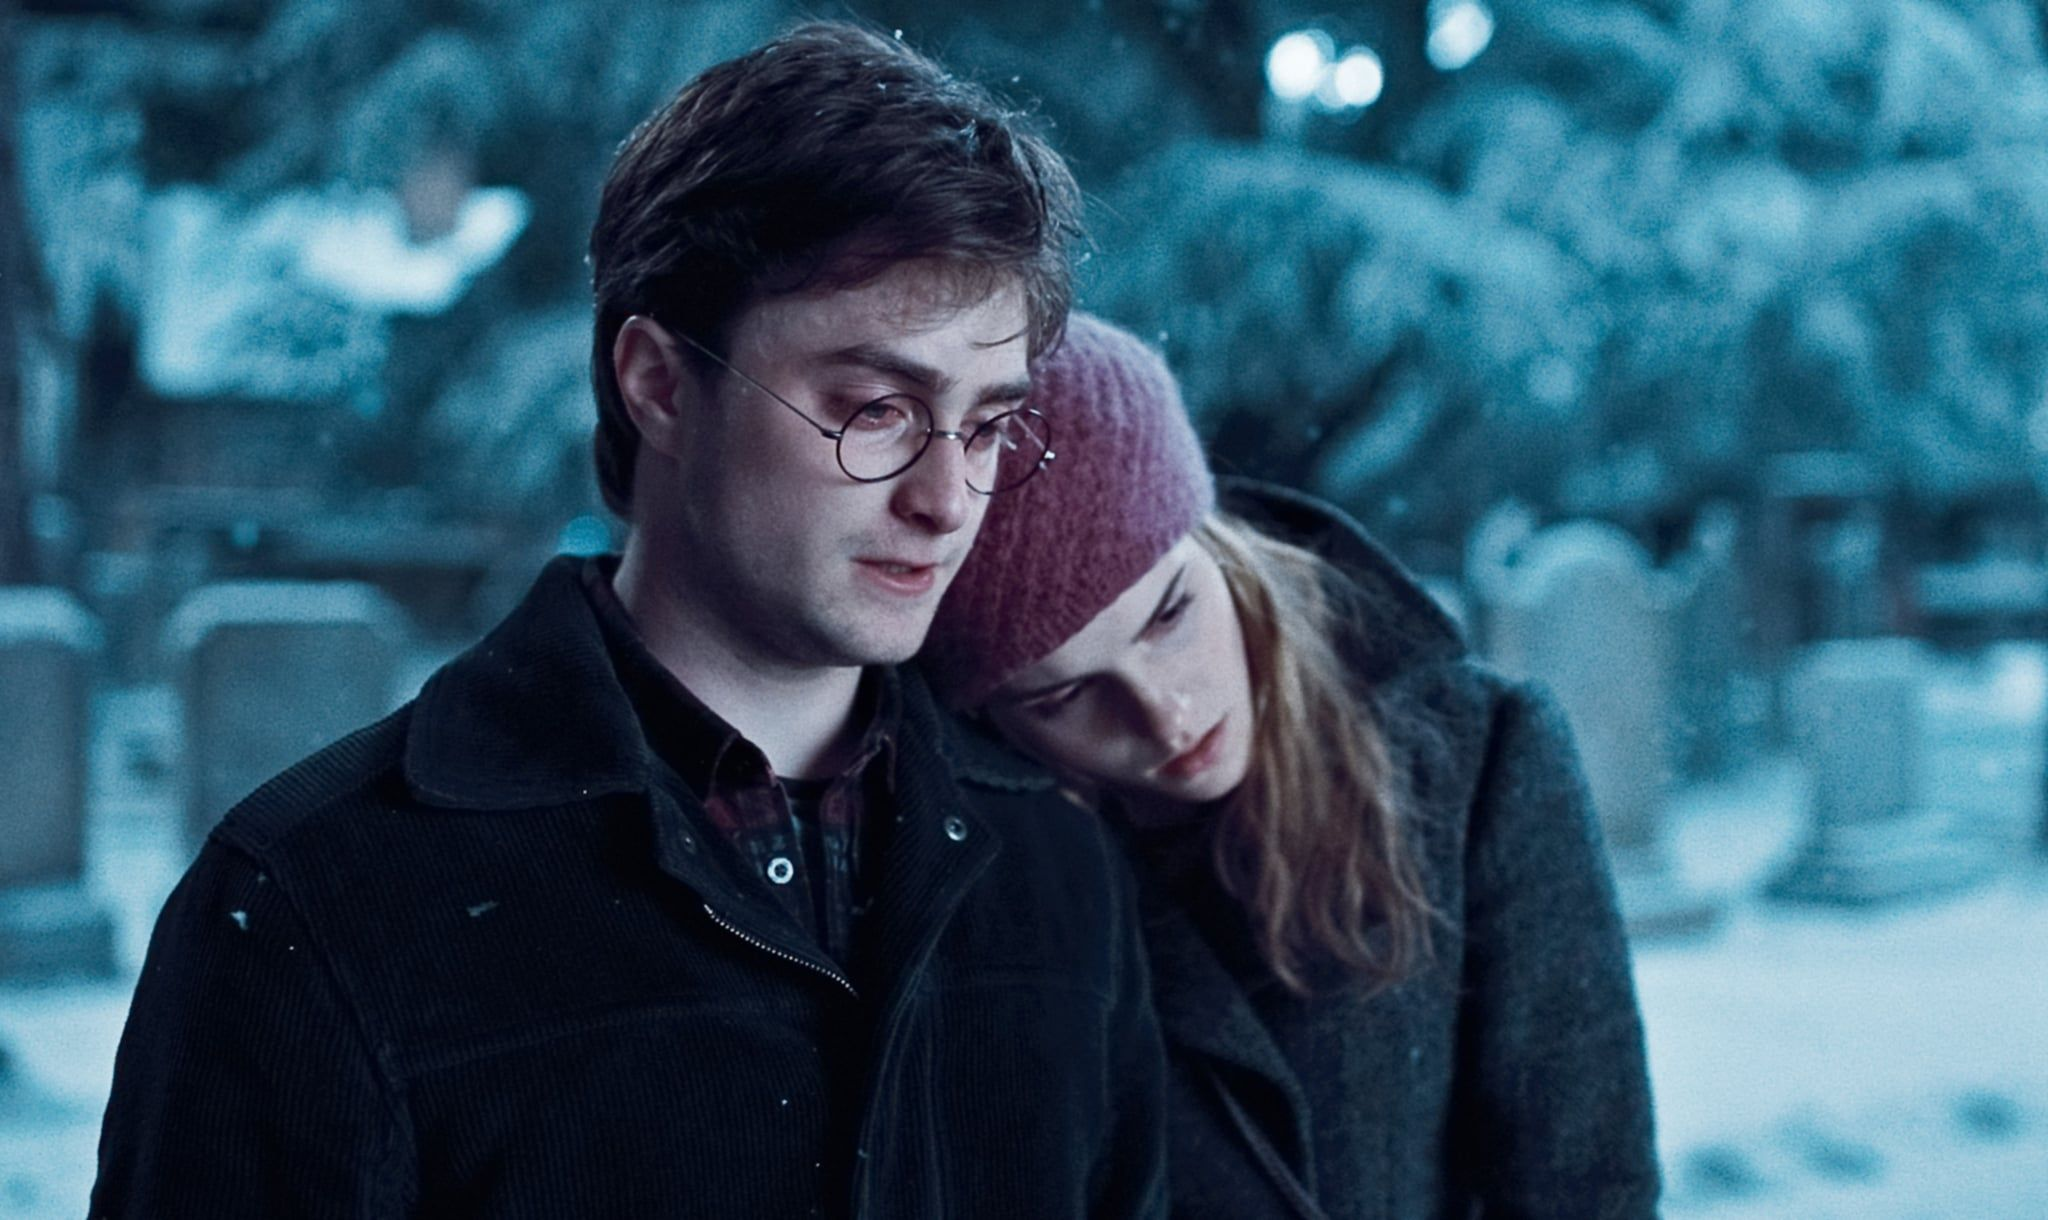 When Hermione Put Her Head On Harry S Shoulder In Godric S Hollow Harry And Hermione Harry Potter Film Harmony Harry Potter